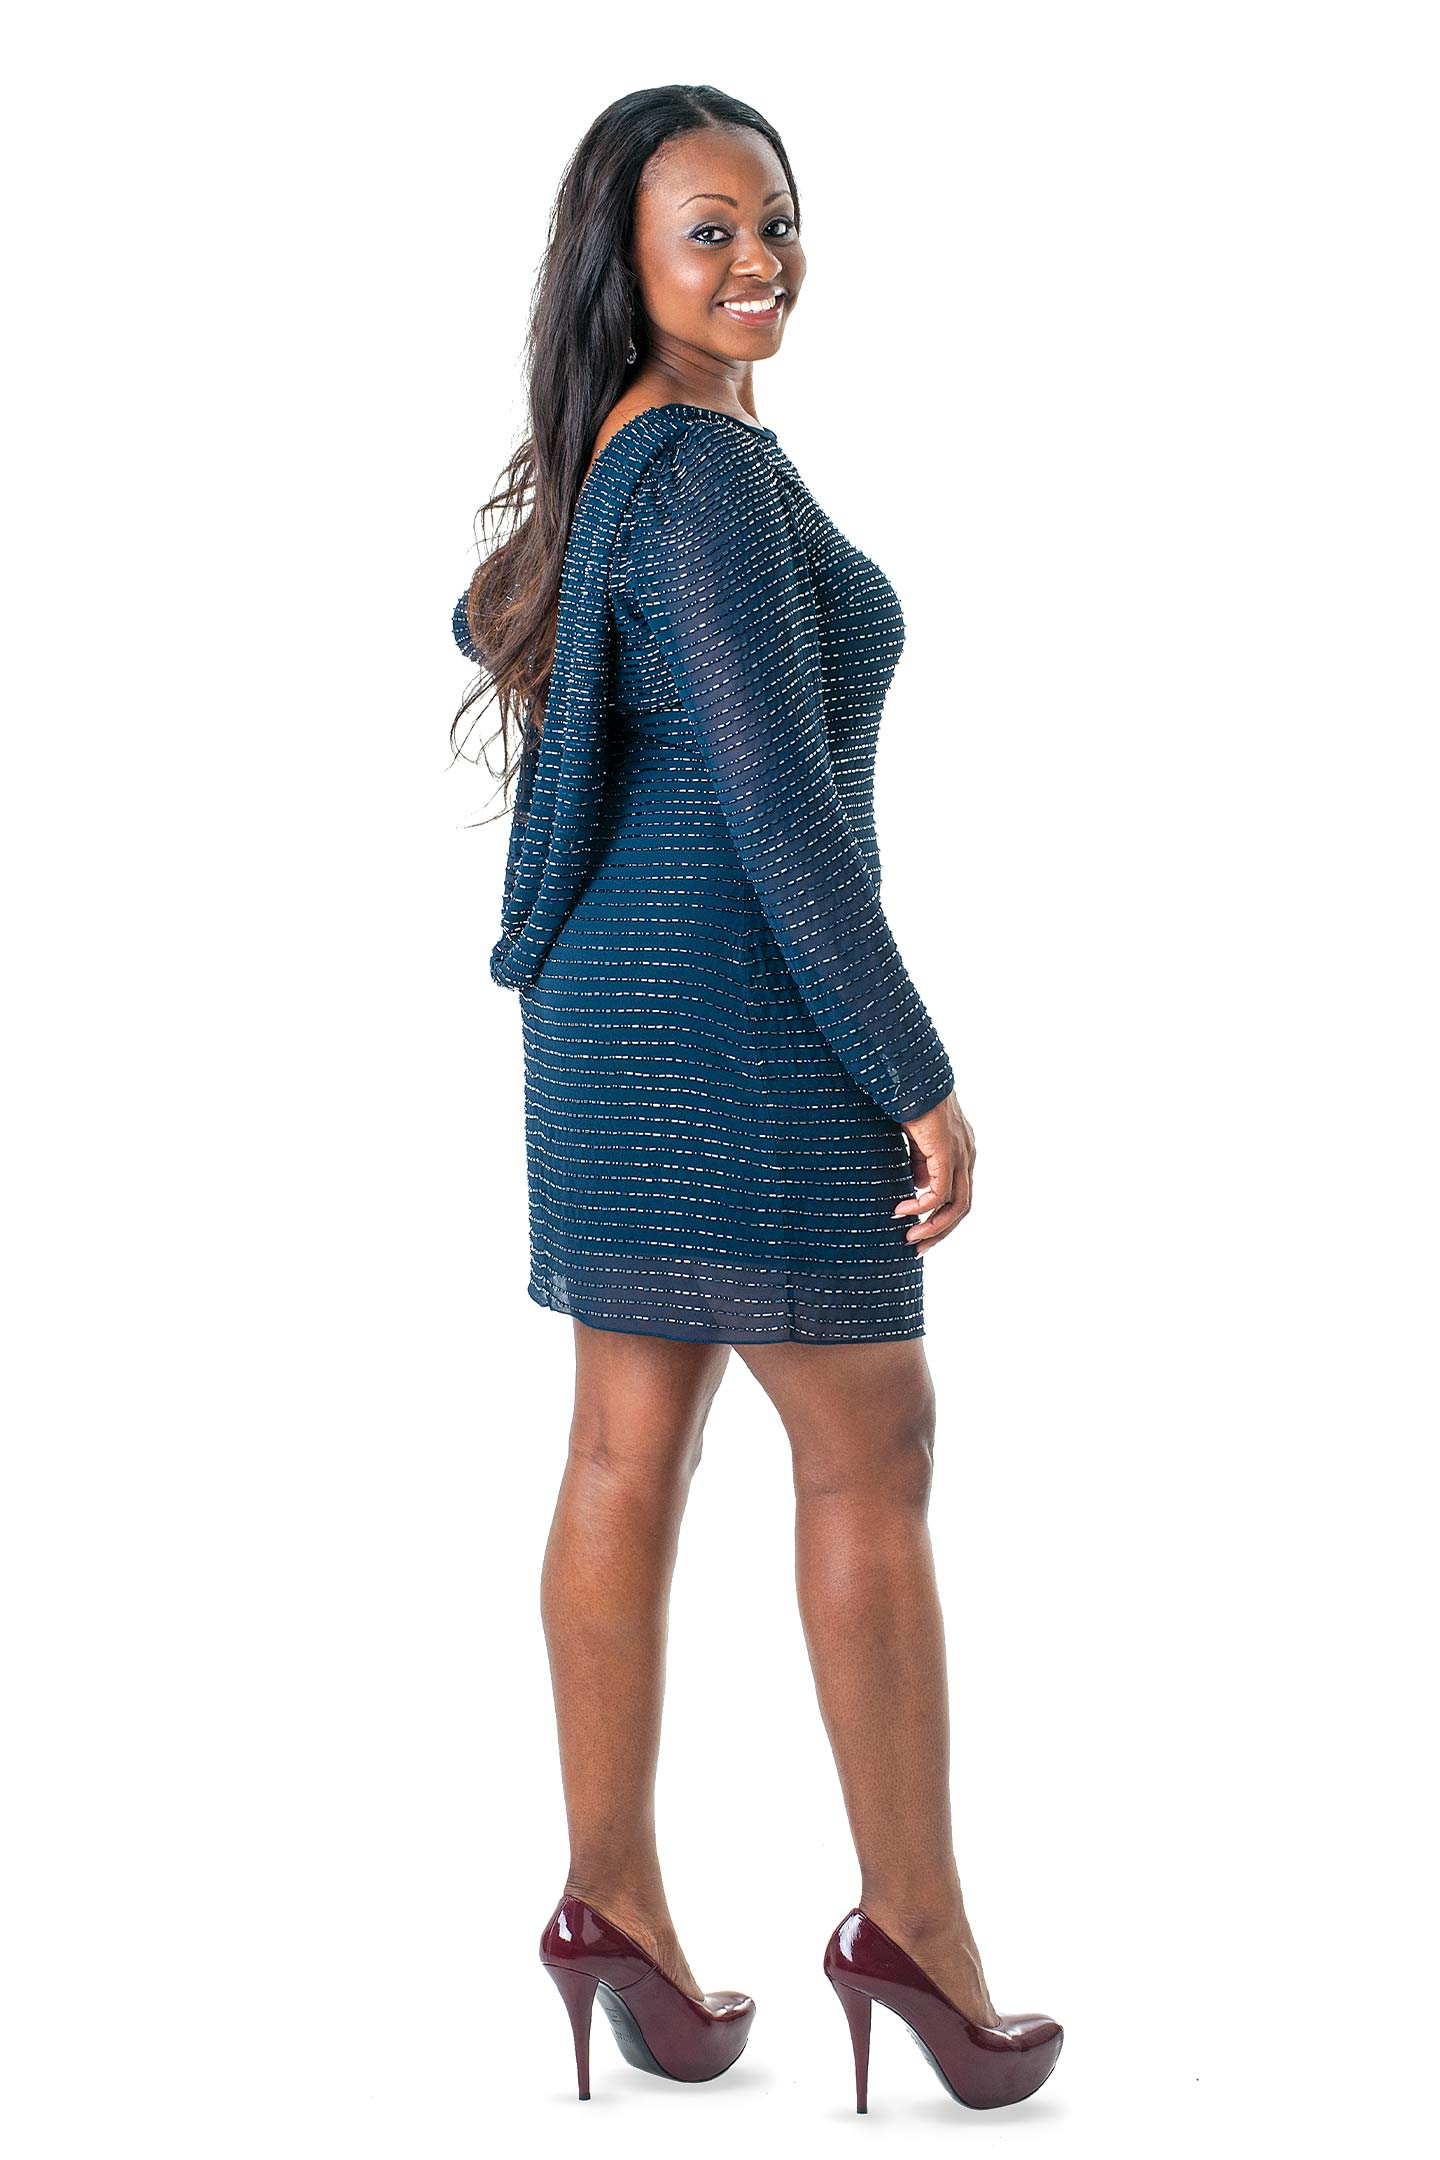 Brittany Johnson Mills models holiday fashion from boutique couture